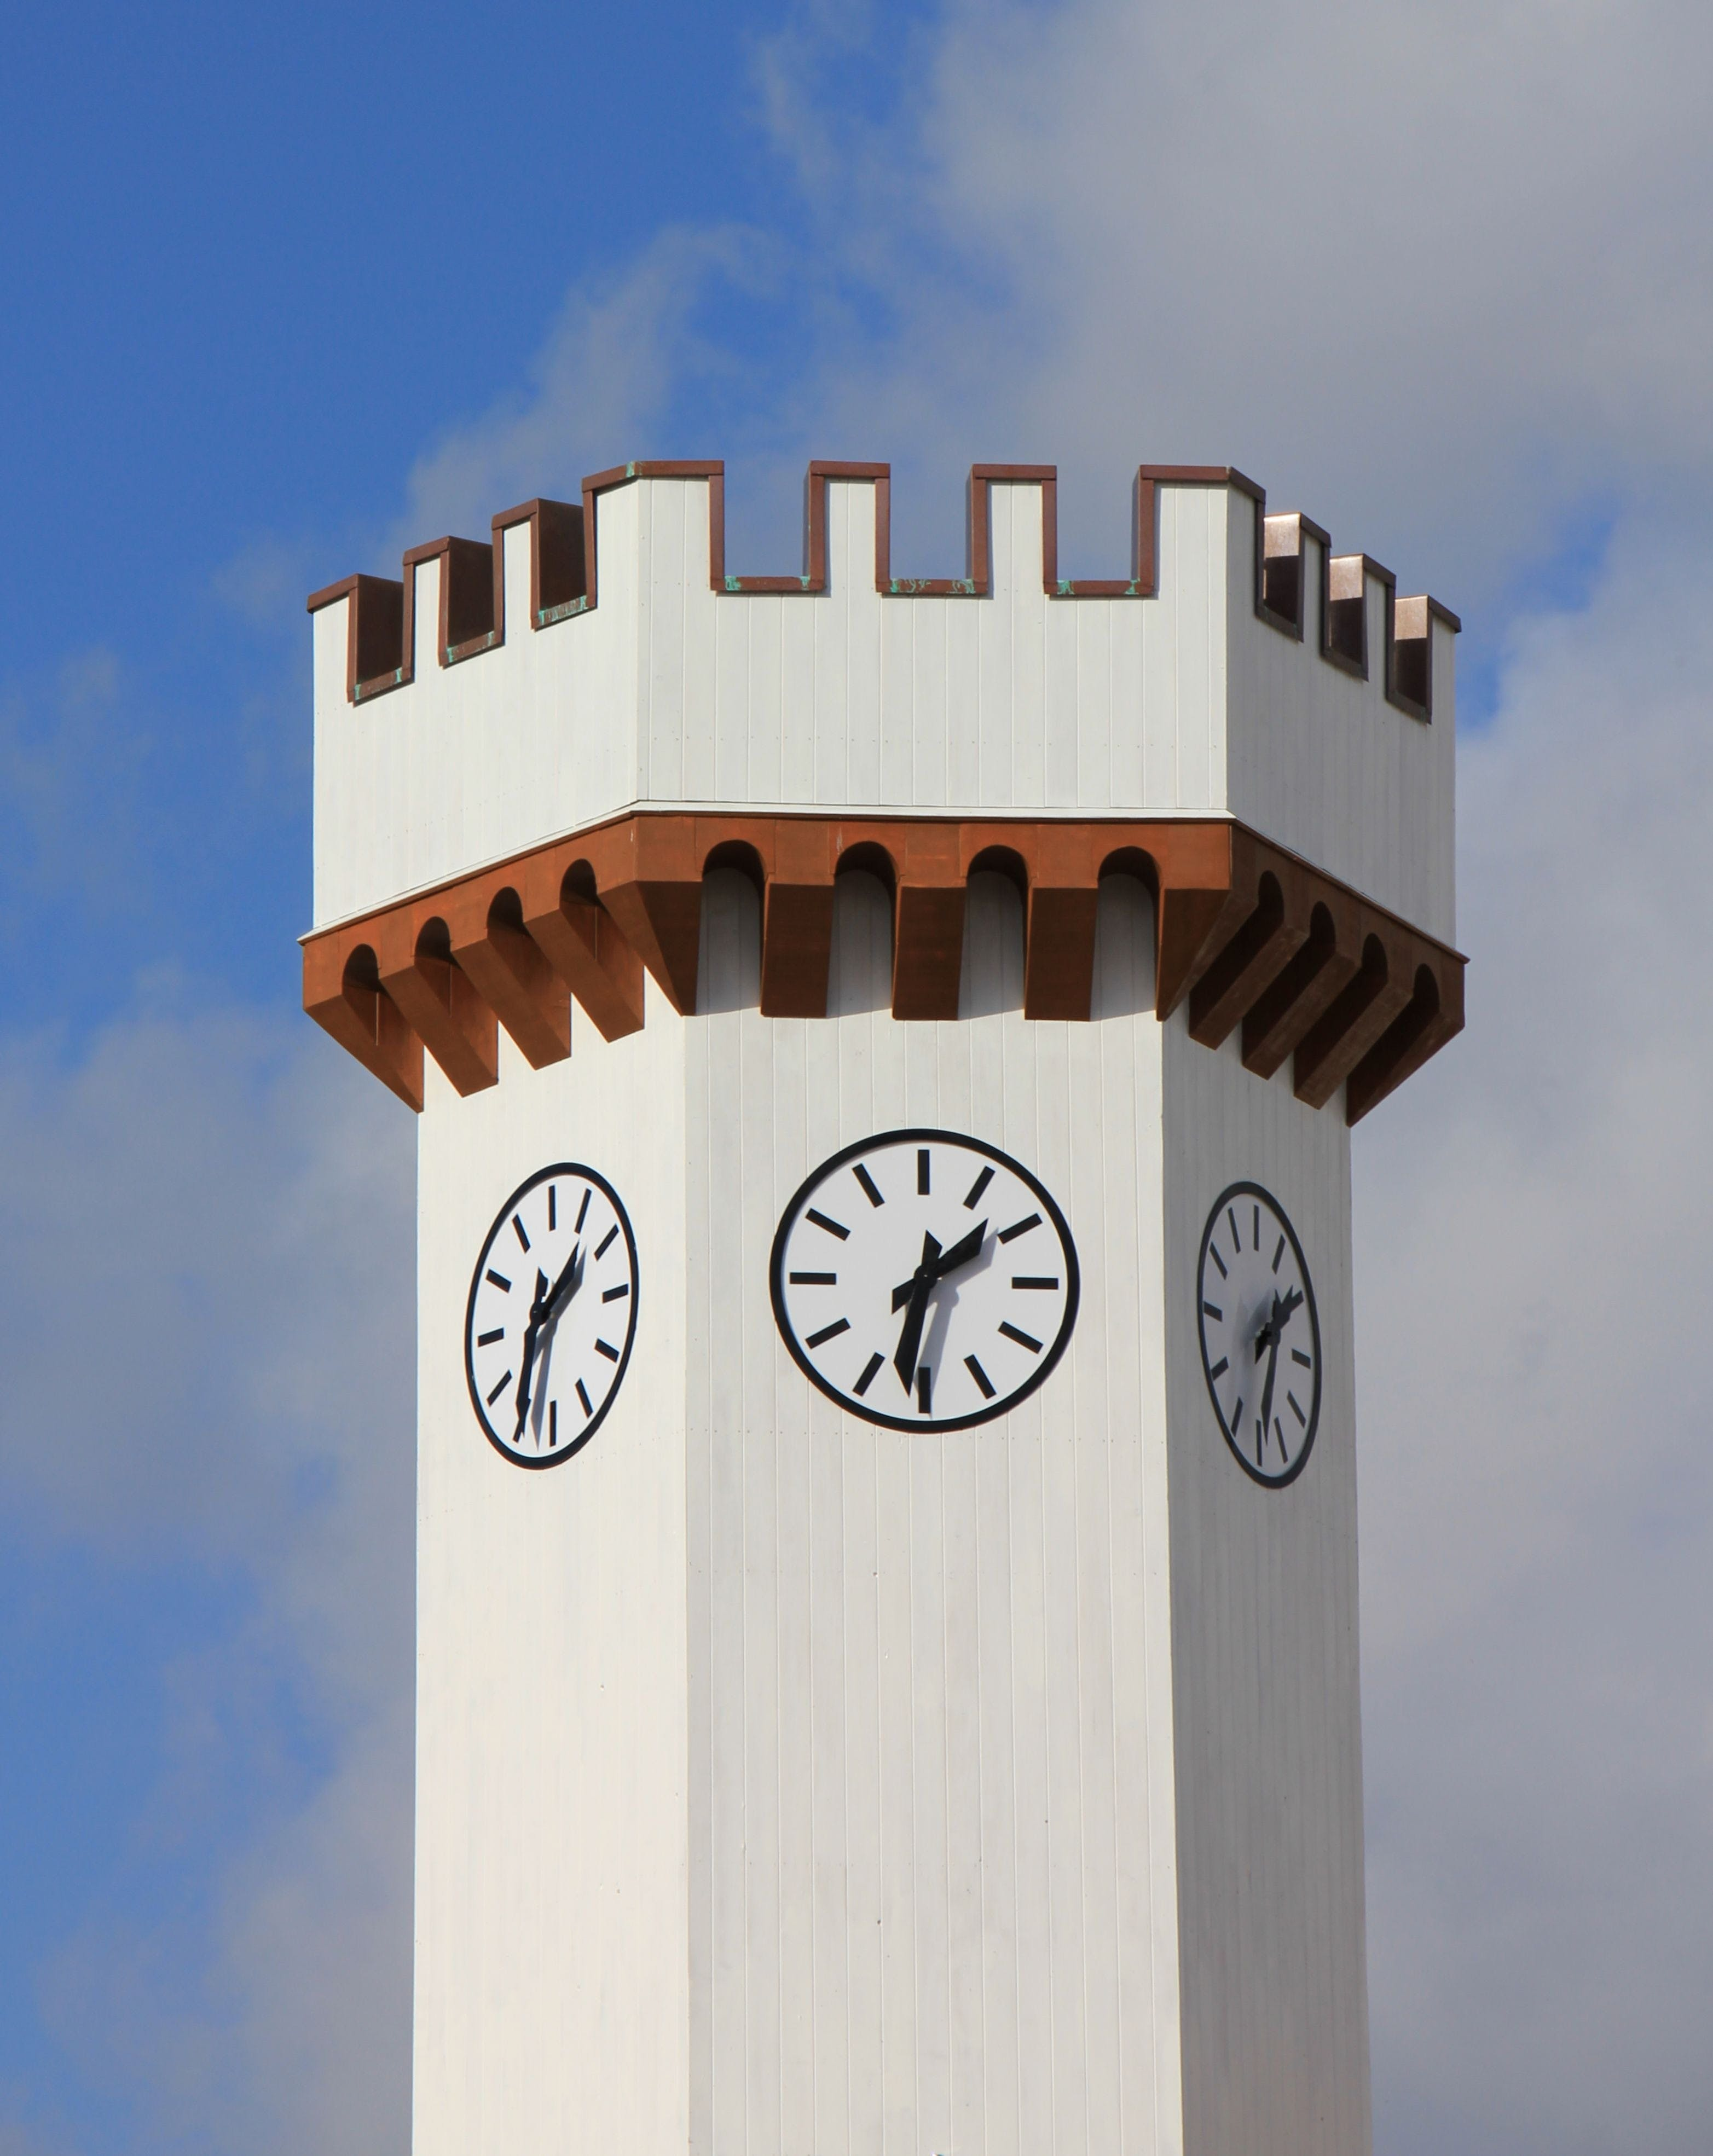 Clock Tower at 1:30